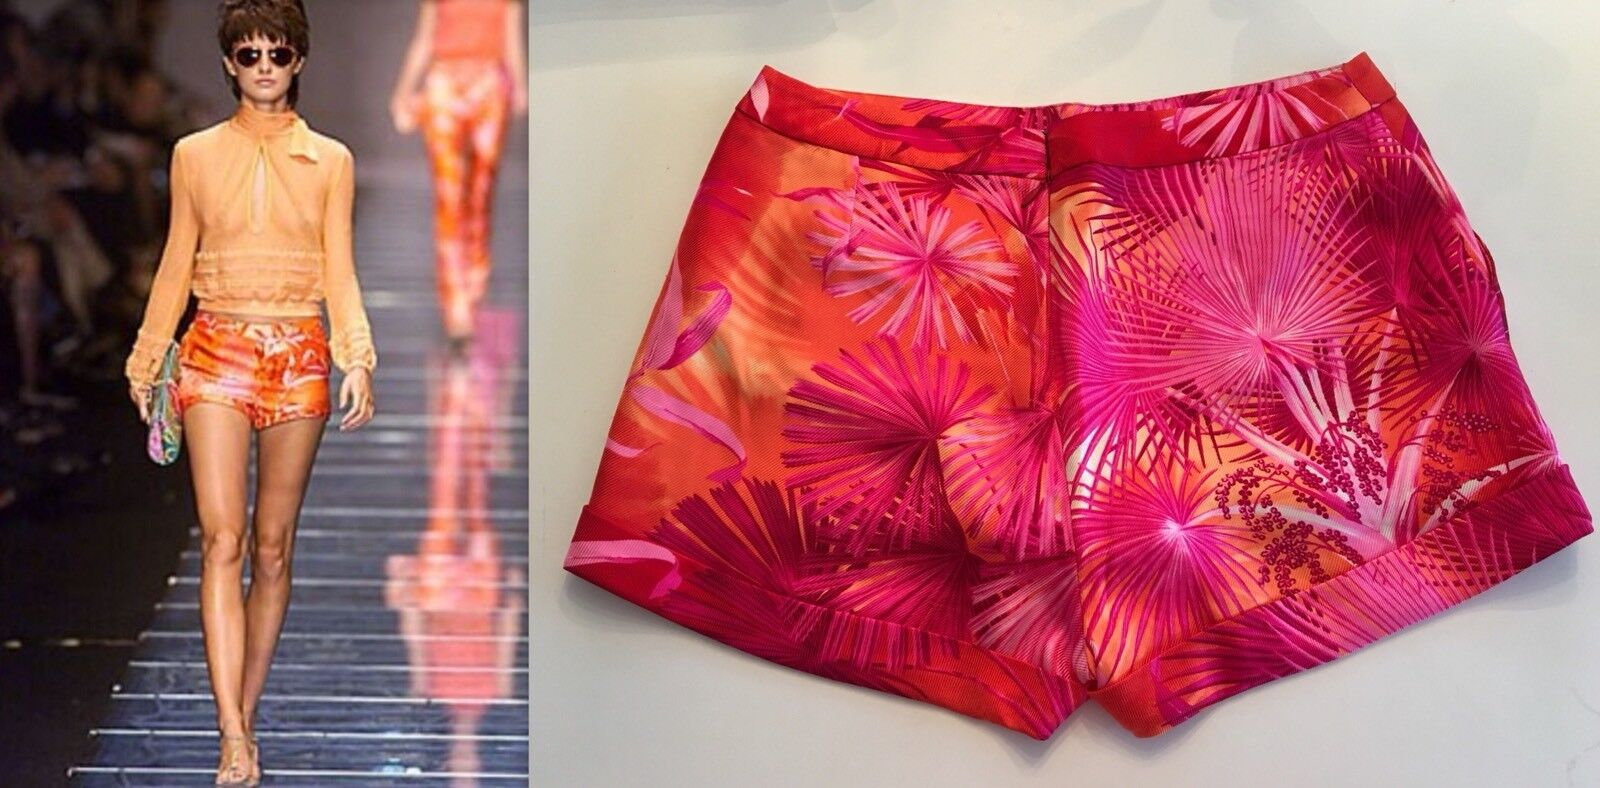 Vintage GIANNI VERSACE RUNWAY SS 2000 Sexy Silk Pants Shorts ICONIC PRINT